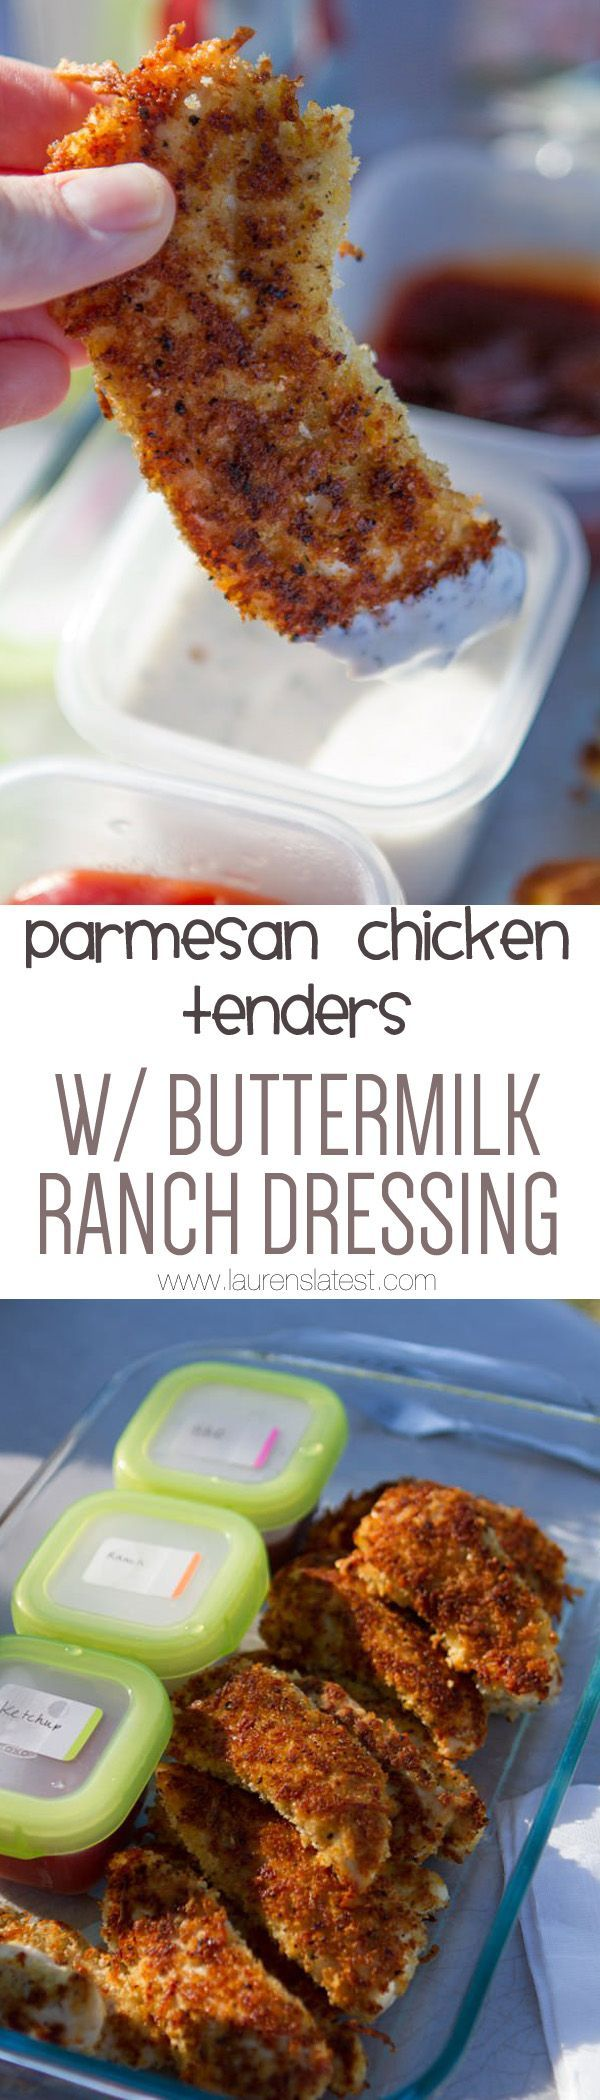 Paremsan Crusted Chicken Tenders w/ Buttermilk Ranch Dressing... You will DIE over how yummy that dressing is!! This is a winner of a dinner!